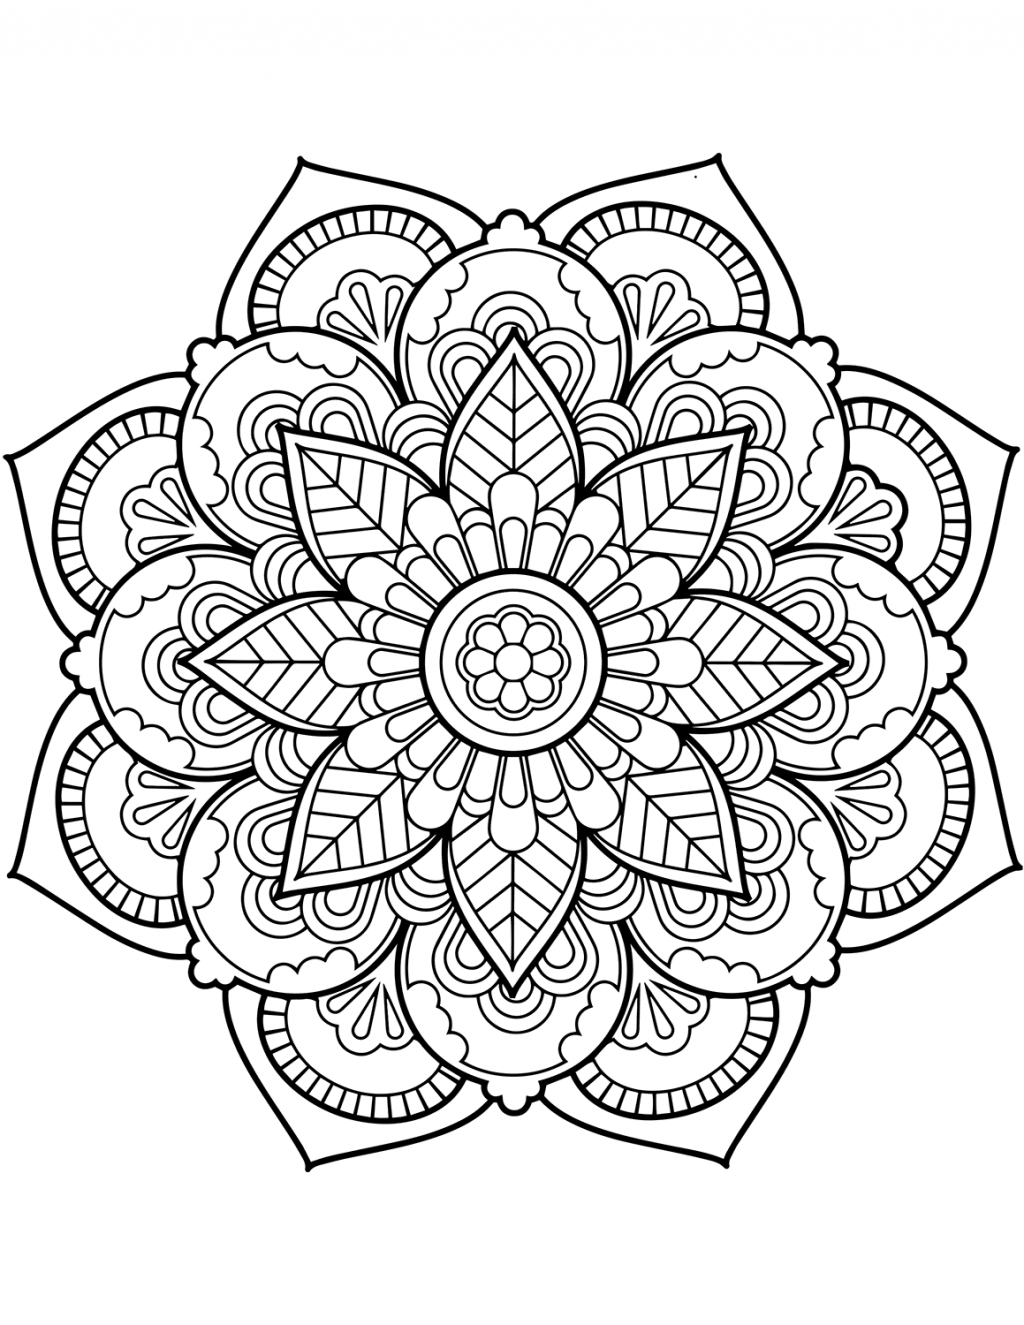 Coloring Page ~ Marvelous Mandala Coloring Sheets Printable Flower - Mandala Coloring Free Printable